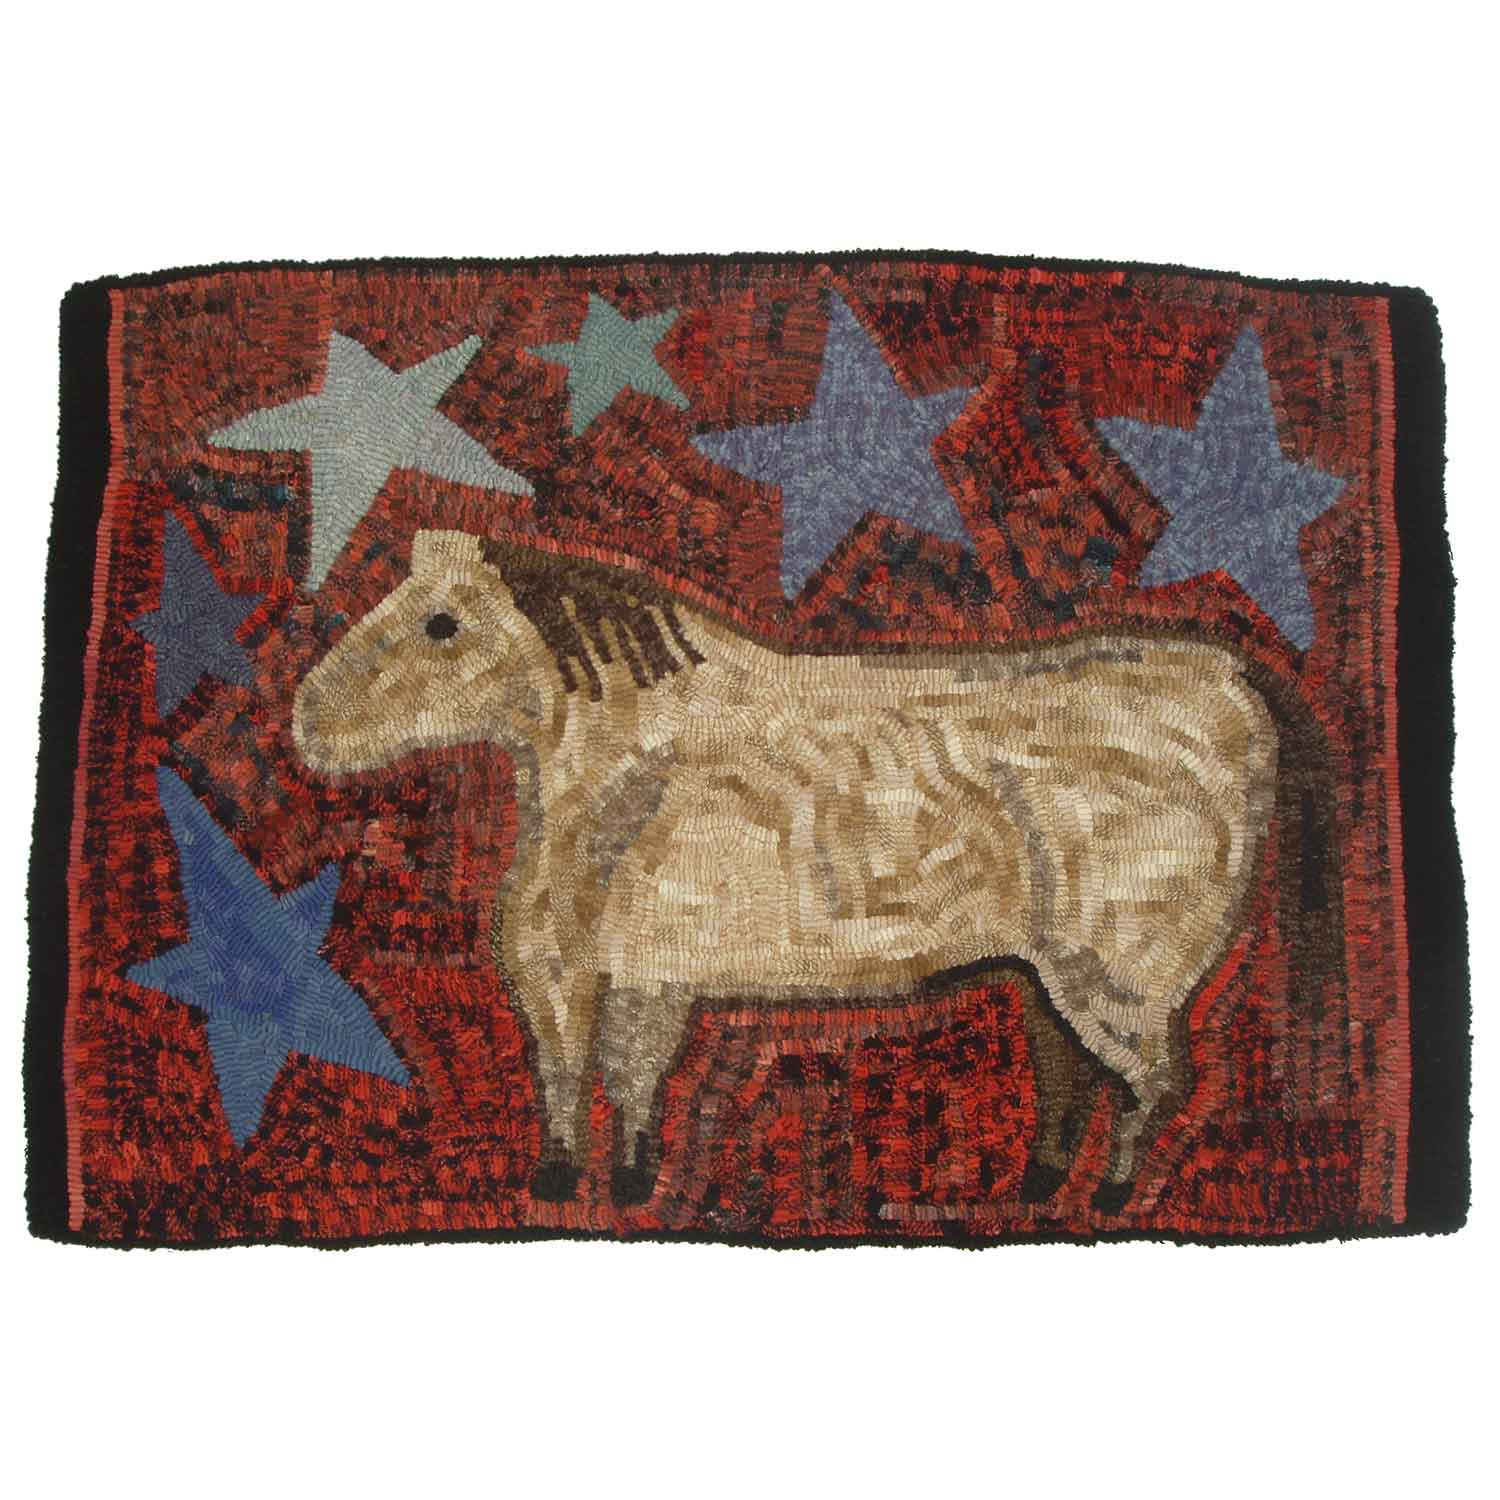 Starry Pony Hooked Rug